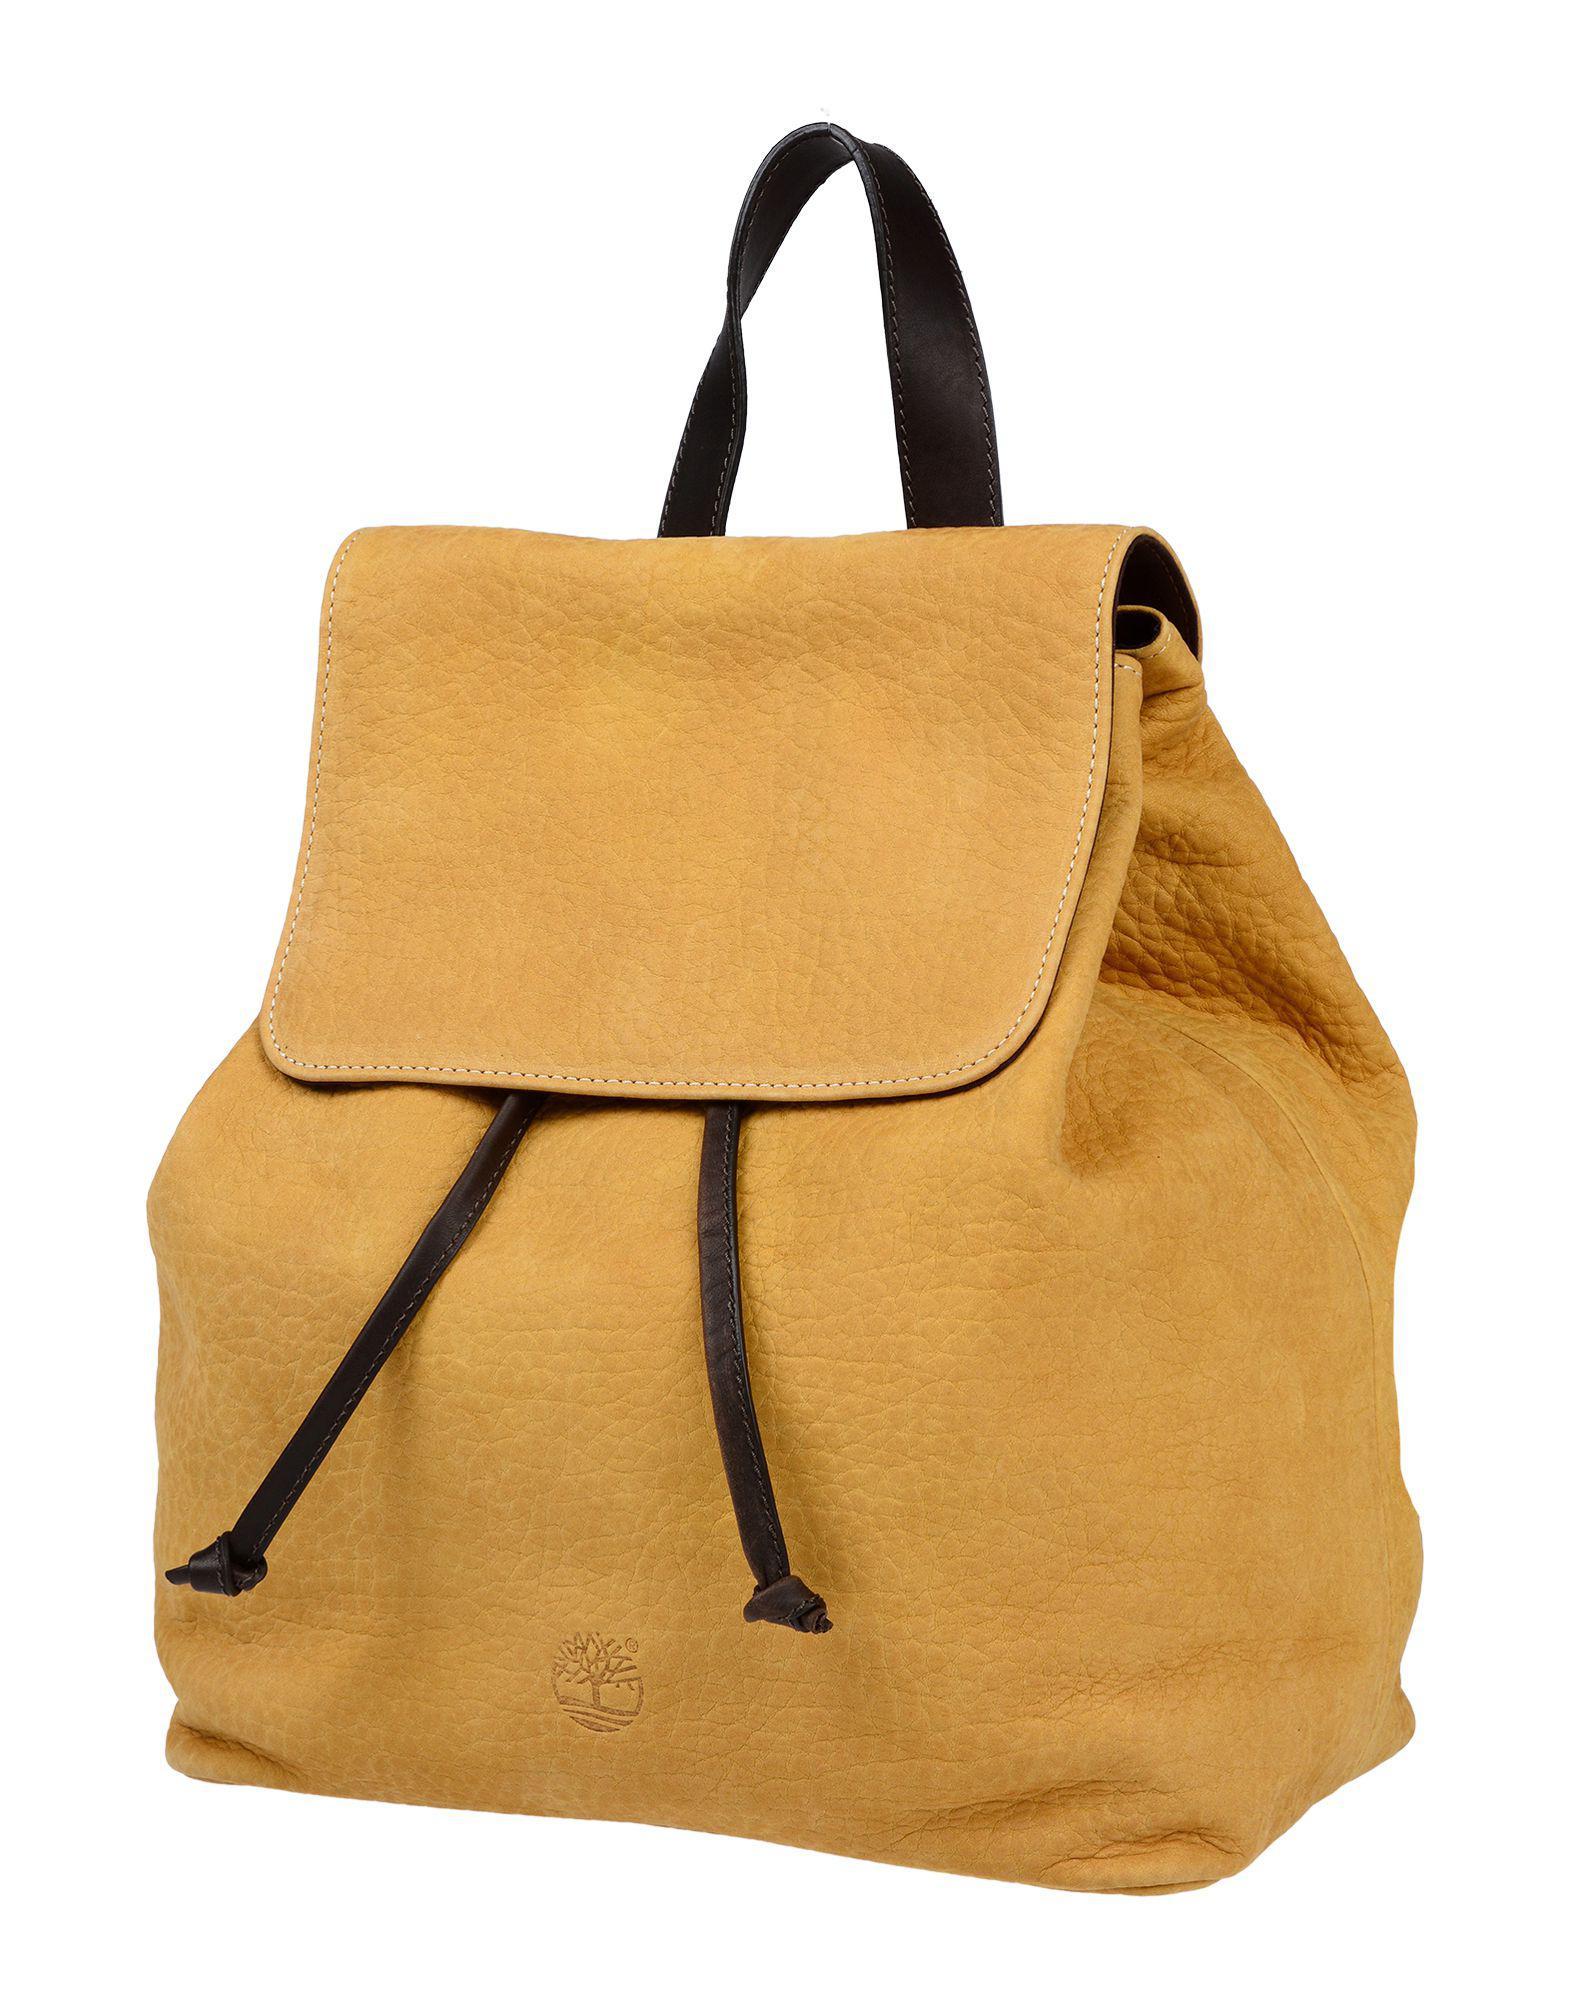 6c972b41934 Lyst - Timberland Backpacks & Bum Bags